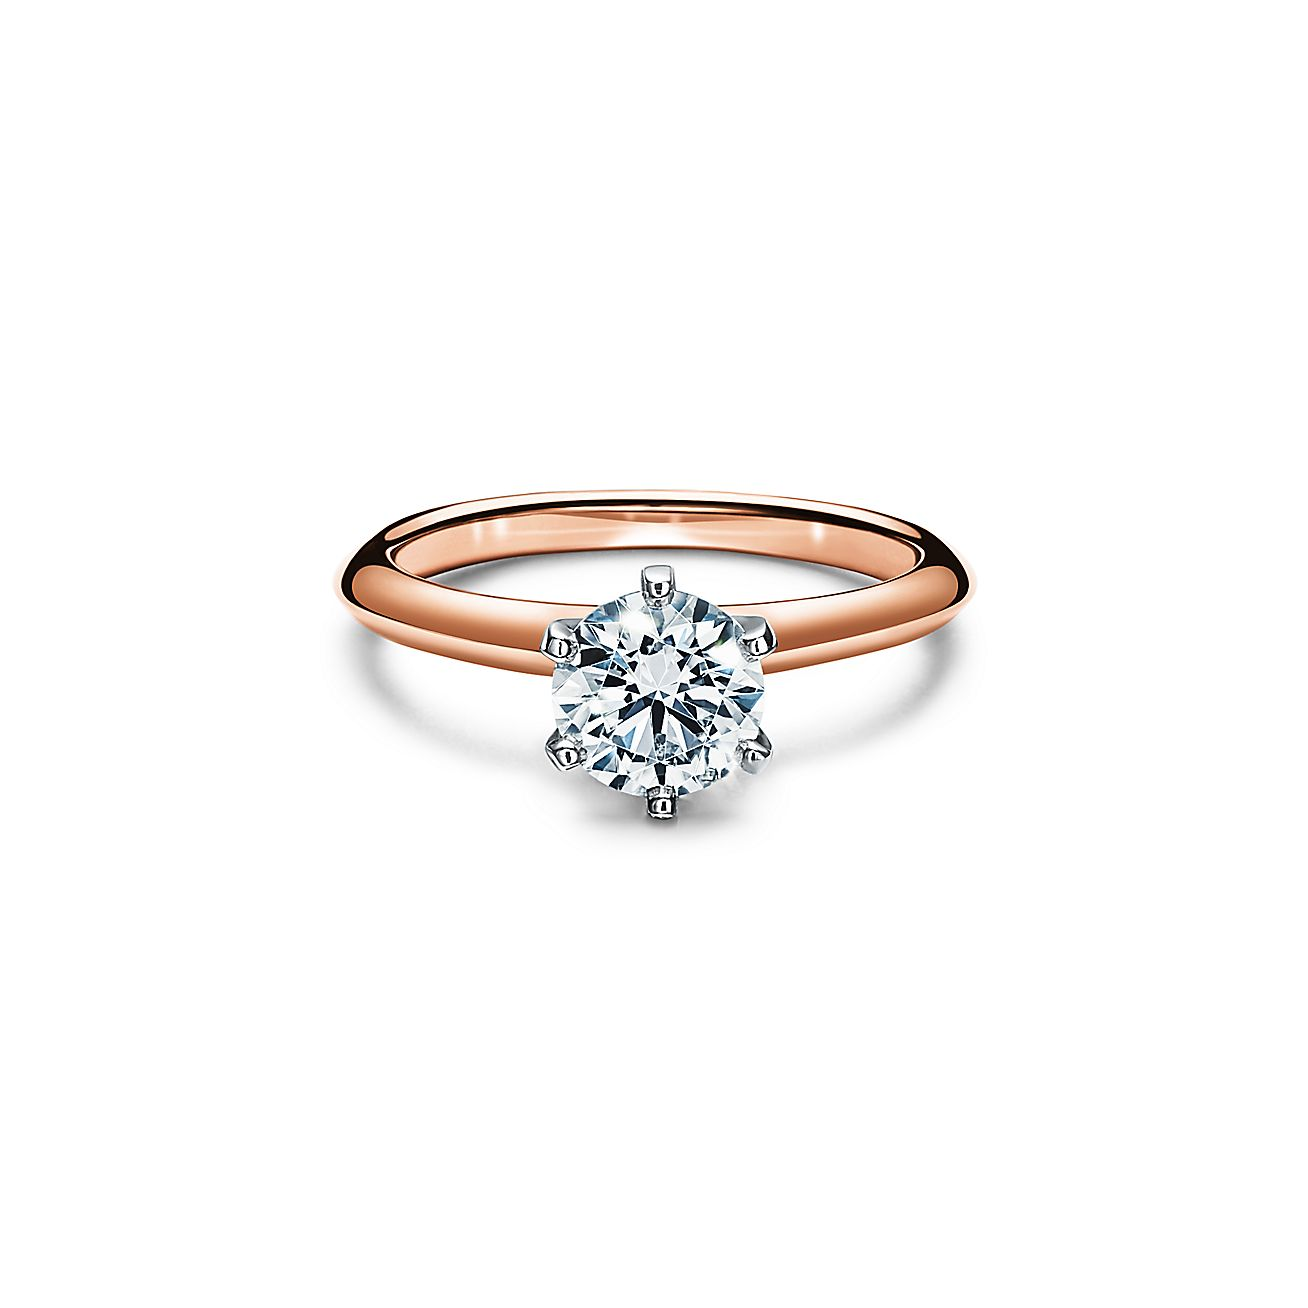 The Tiffany Setting In 18k Rose Gold World S Most Iconic Engagement Ring Tiffany Co